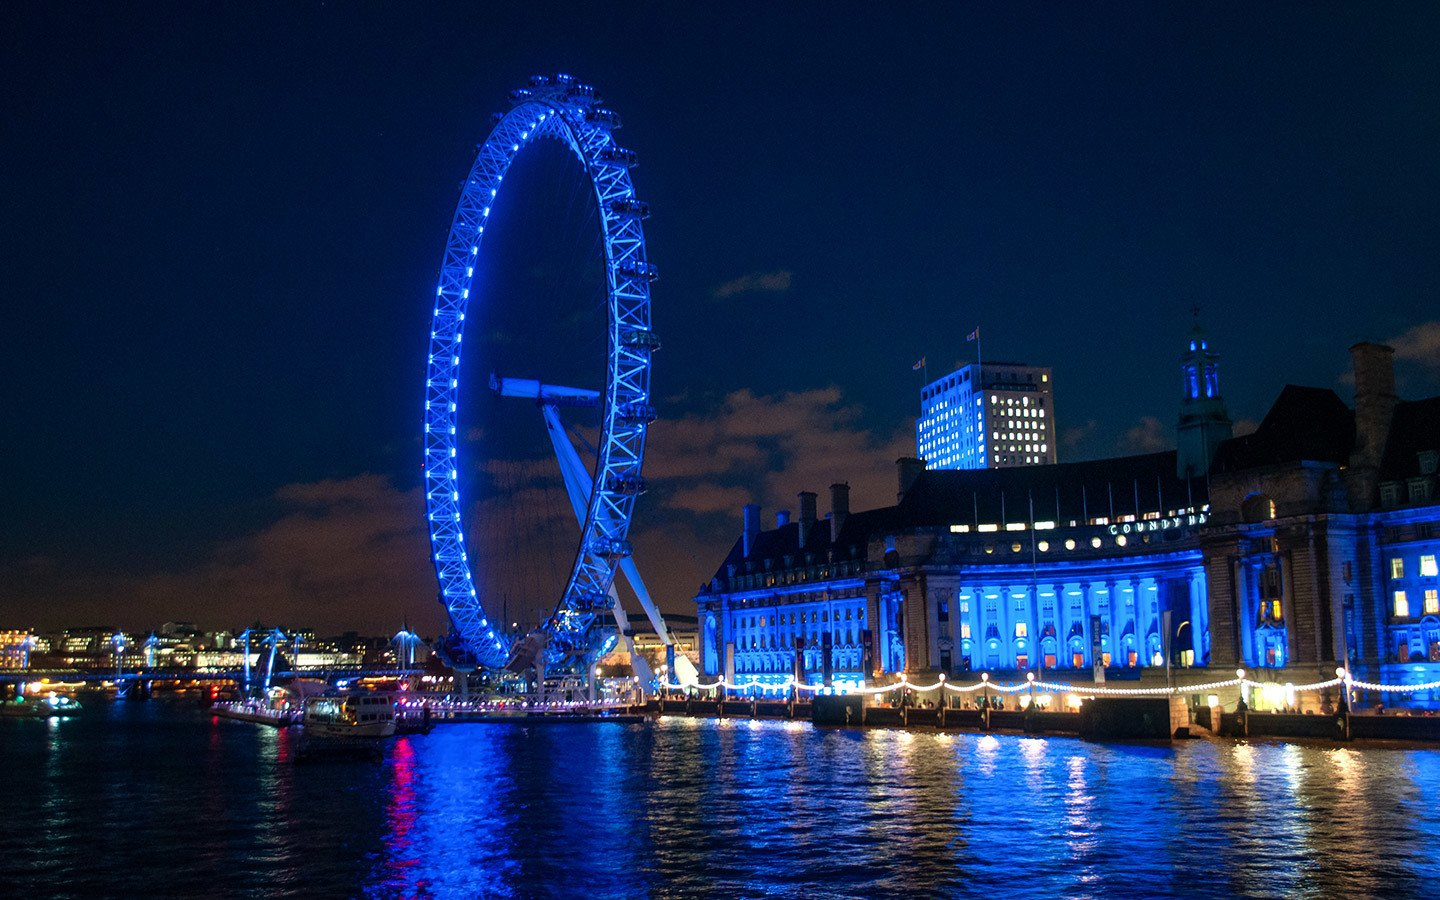 London film locations: A self-guided walking tour – On the Luce travel blog